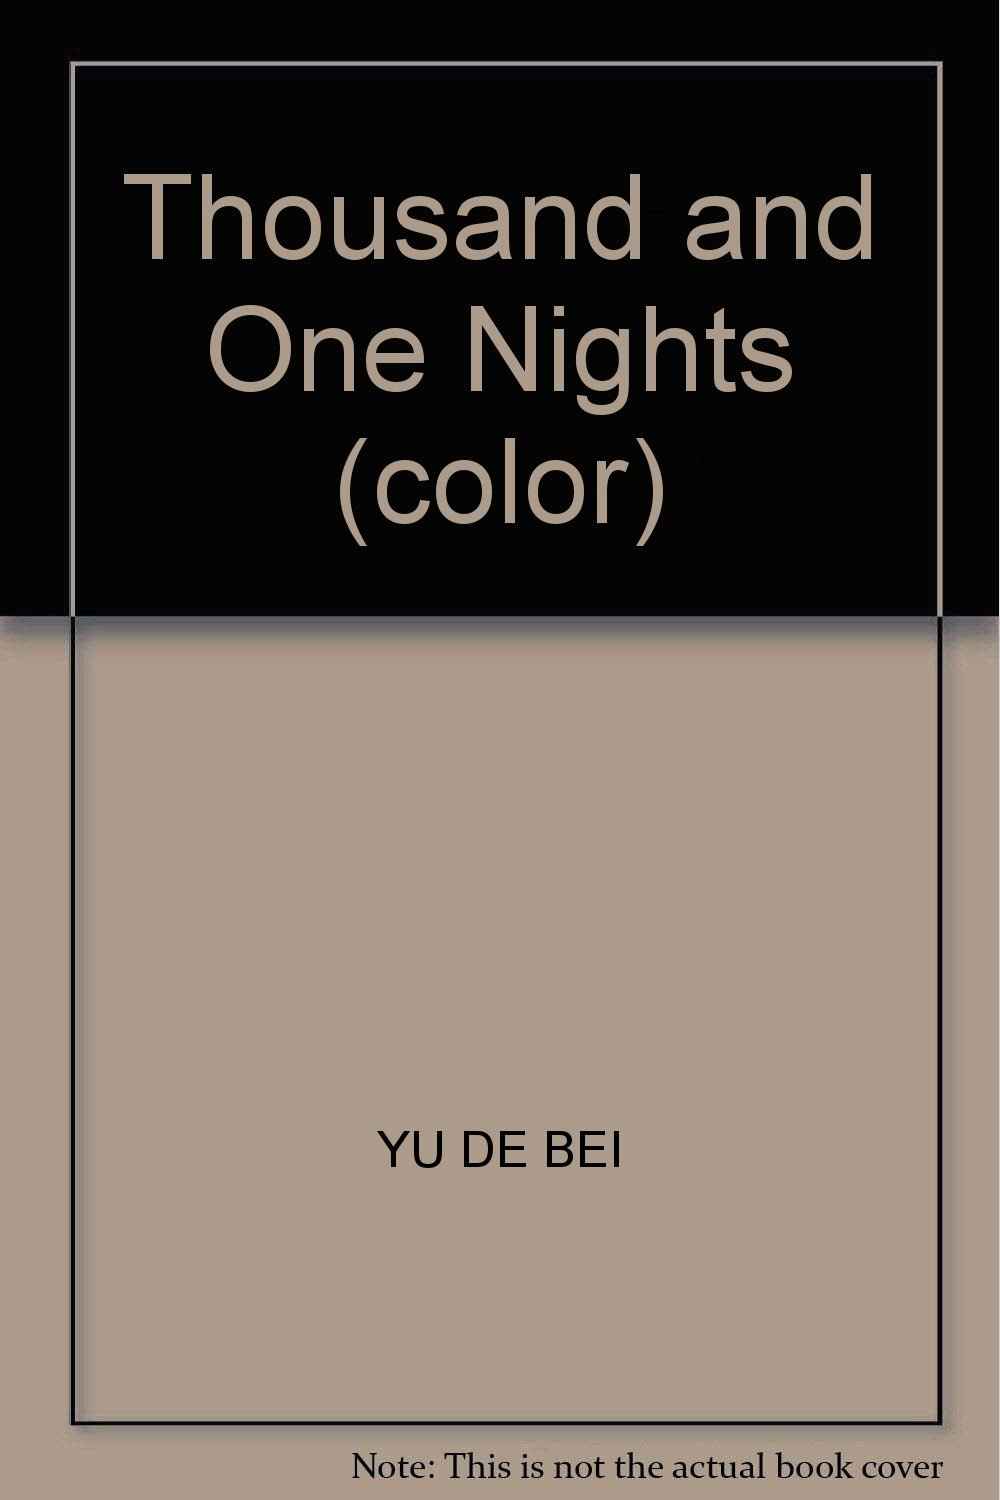 Thousand and One Nights (color) pdf